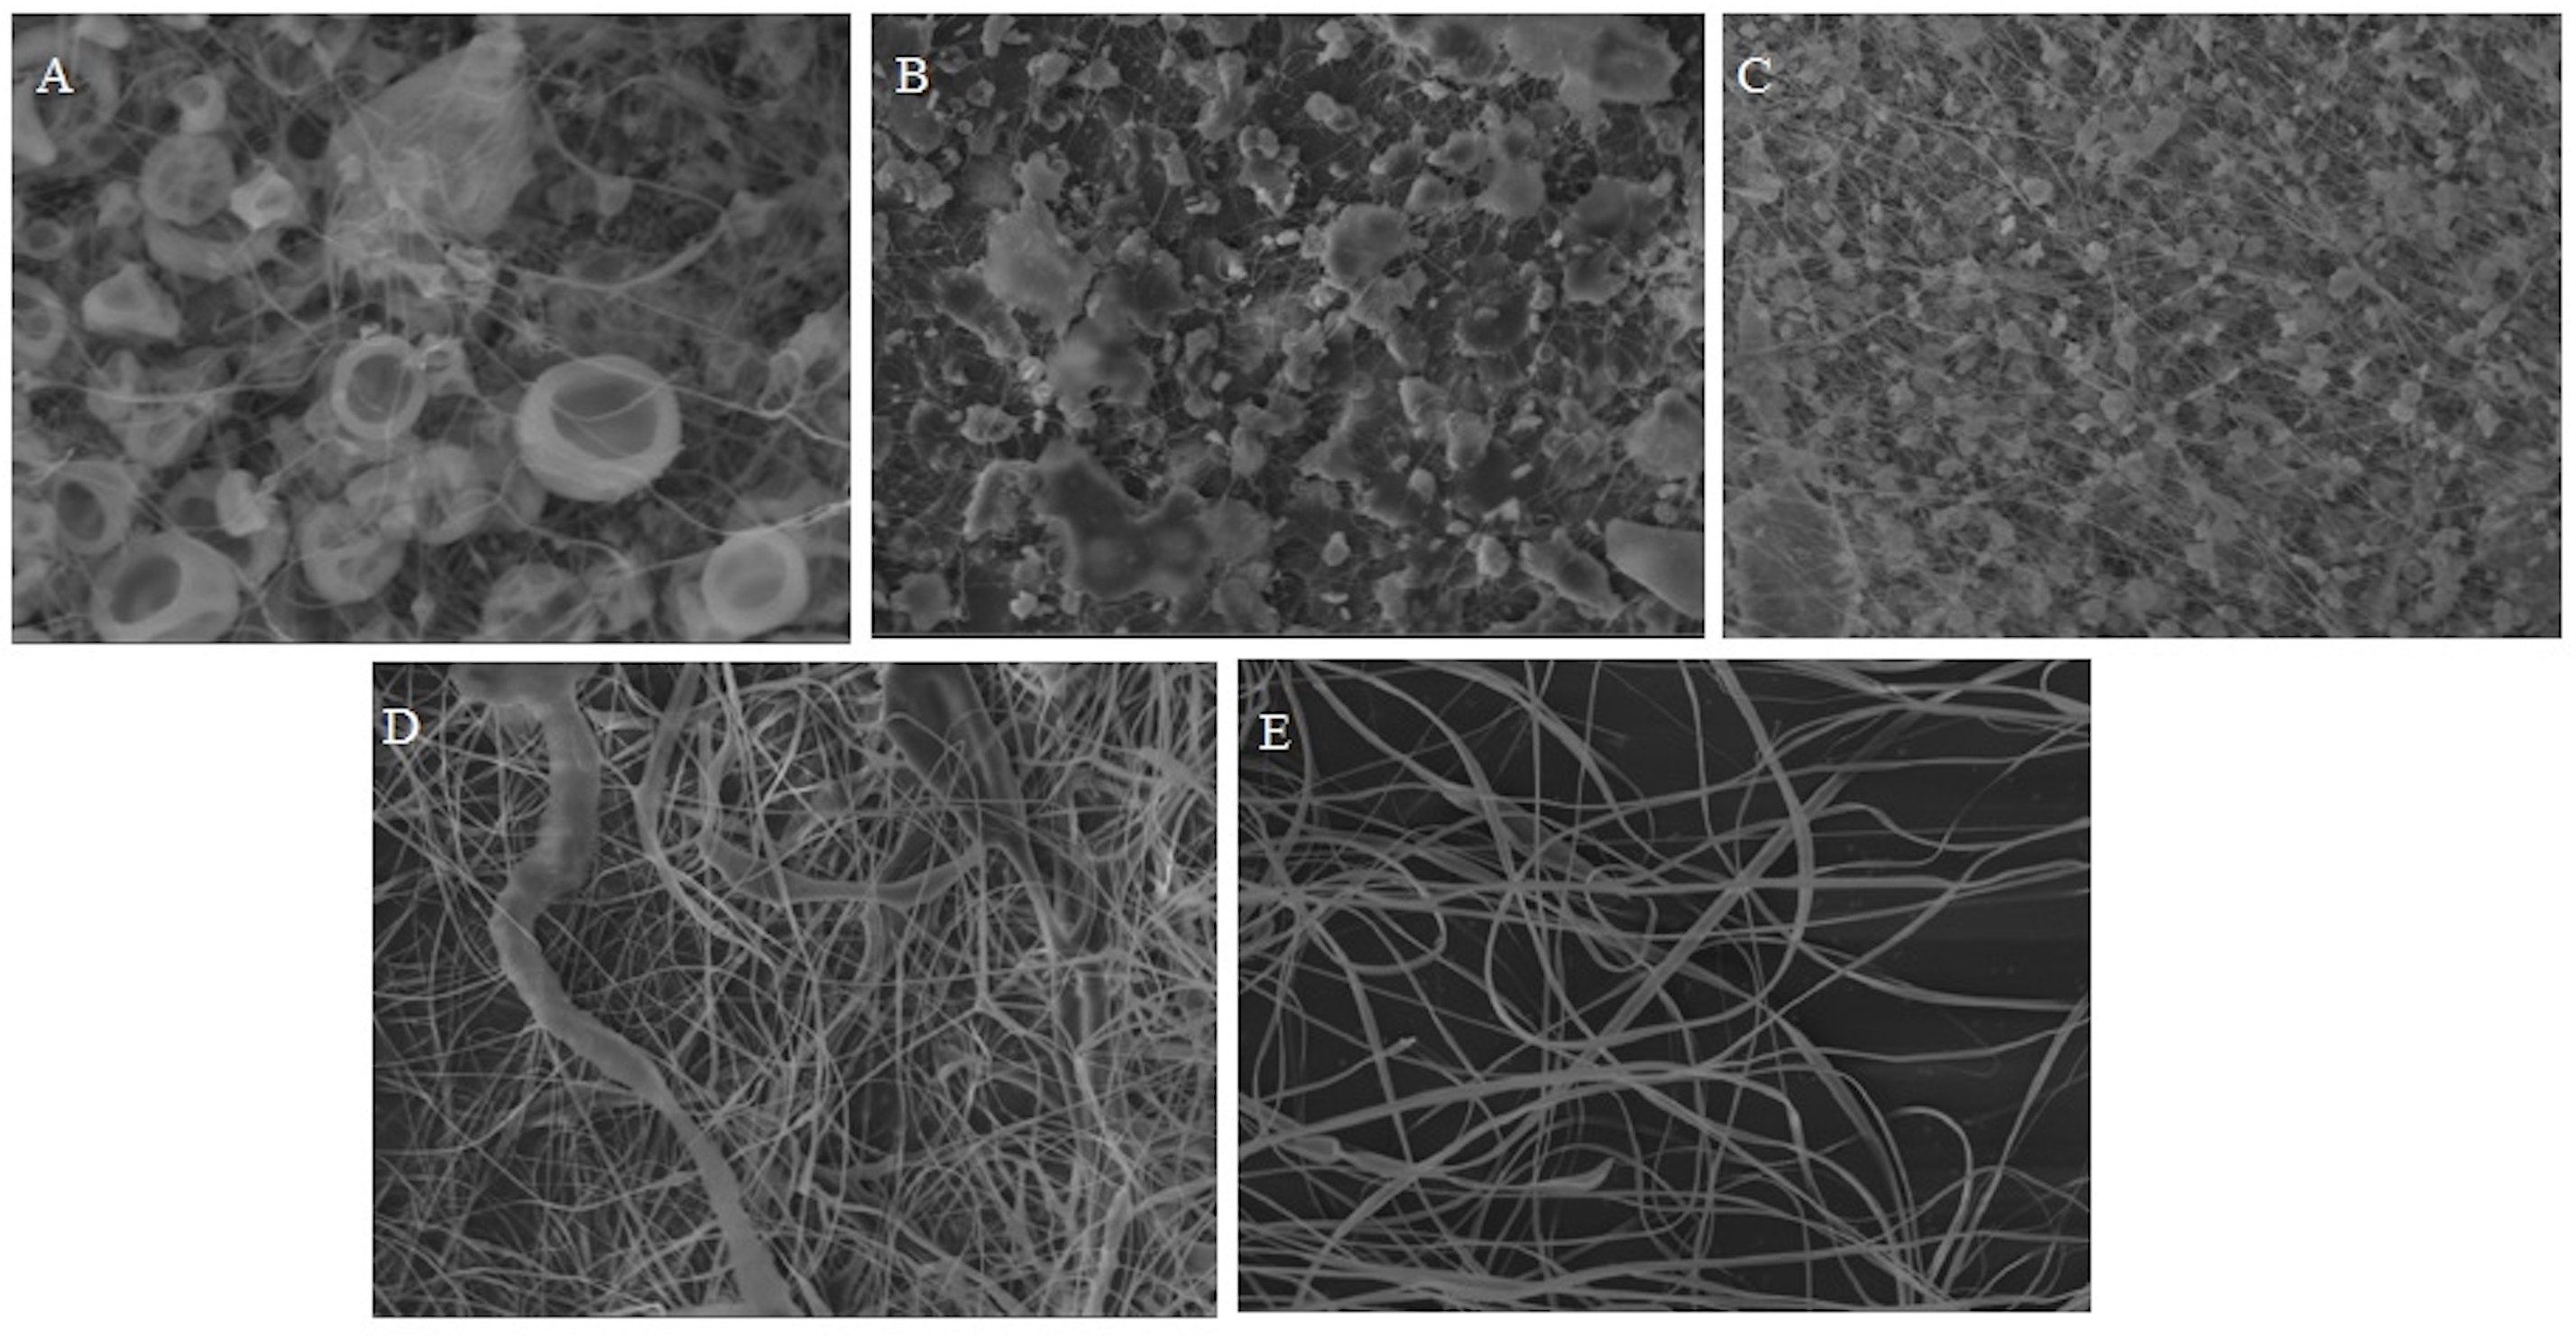 Figure 1: Scanning electron micrographs of cellulose acetate of 10% CA electrospun fibers prepared in different acetone/acetic acid at ratio of (A) 1:9; (B) 3:7; (C) 5:5; (D) 7:3; (E) 9:1.